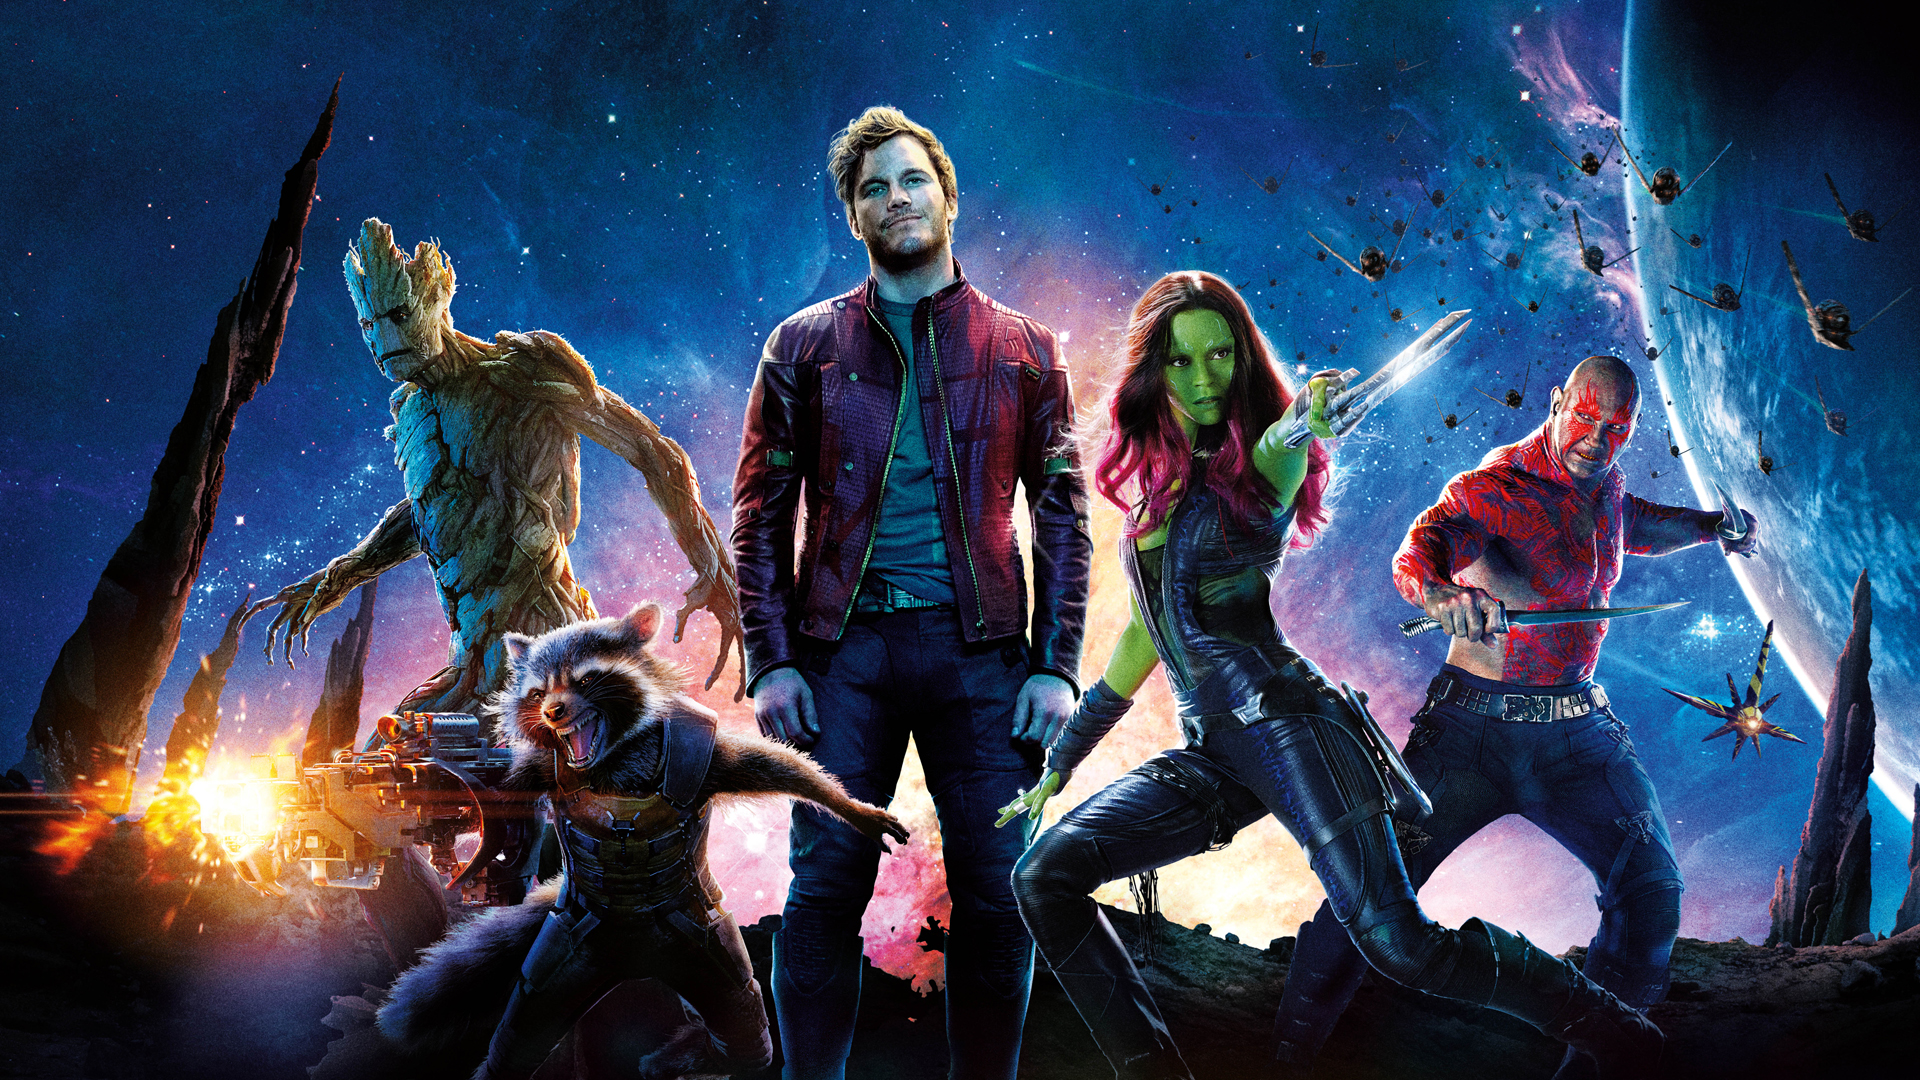 Guardians Of The Galaxy Wallpaper 1920x1080 By Sachso74 On Deviantart